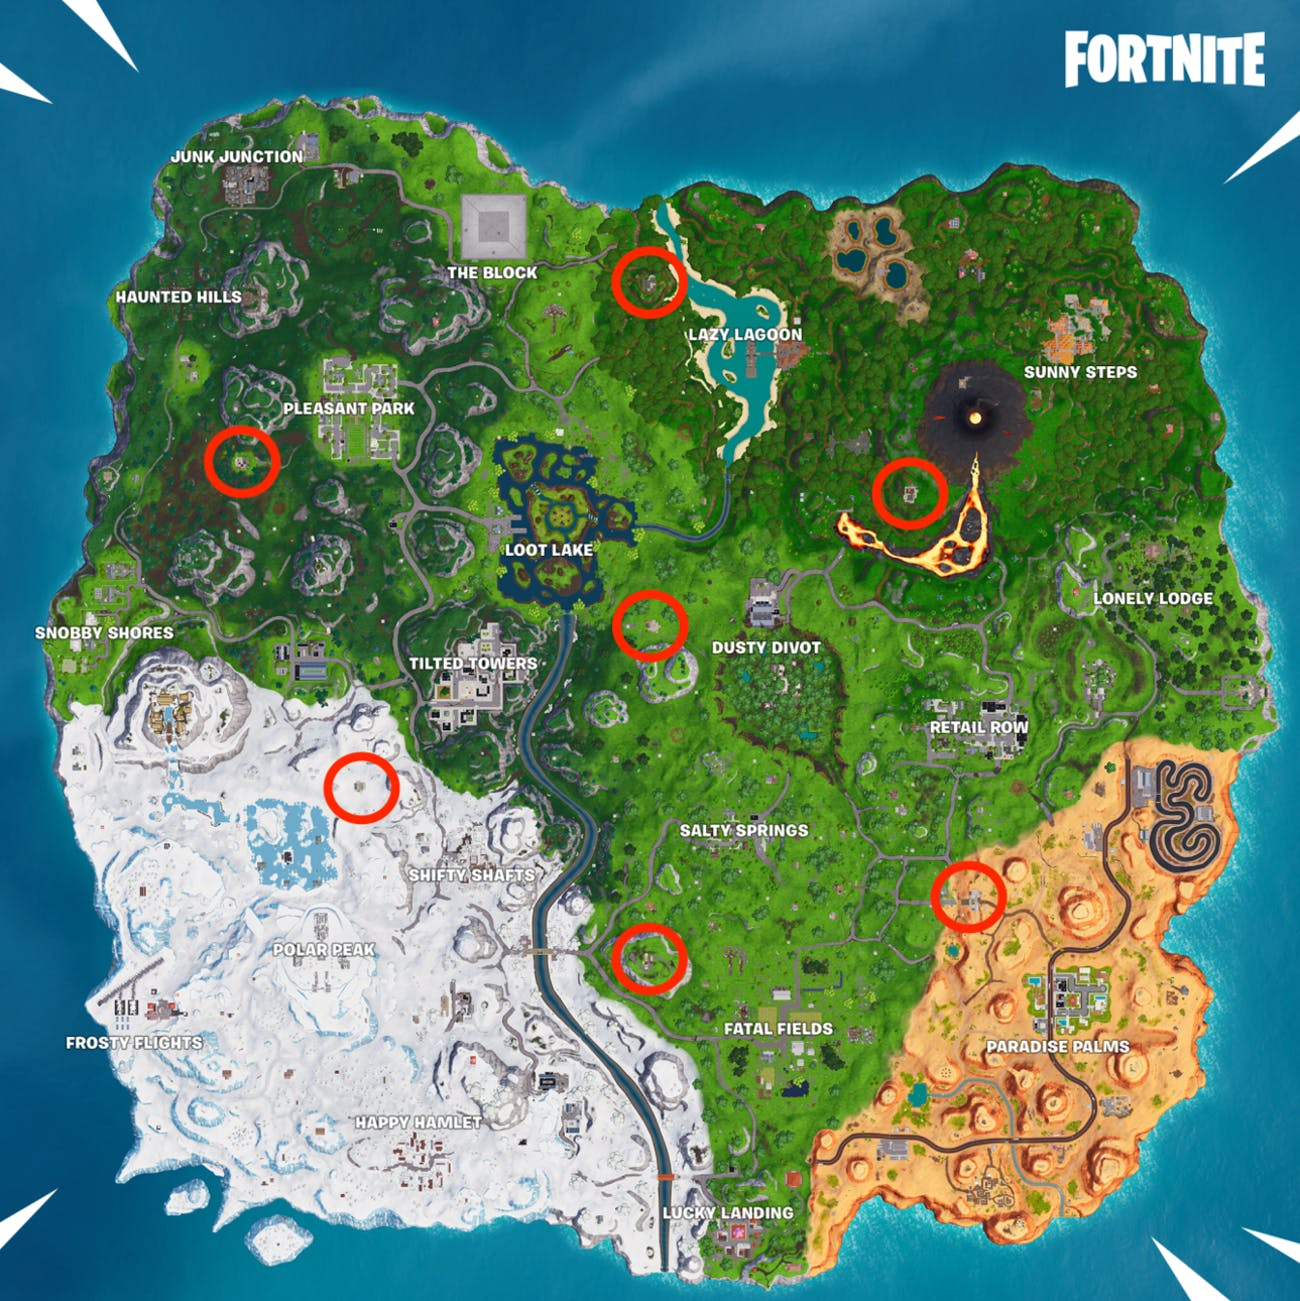 Fortnite\' Pirate Camp Locations Map: Where to Find All 7 in Season 8 ...